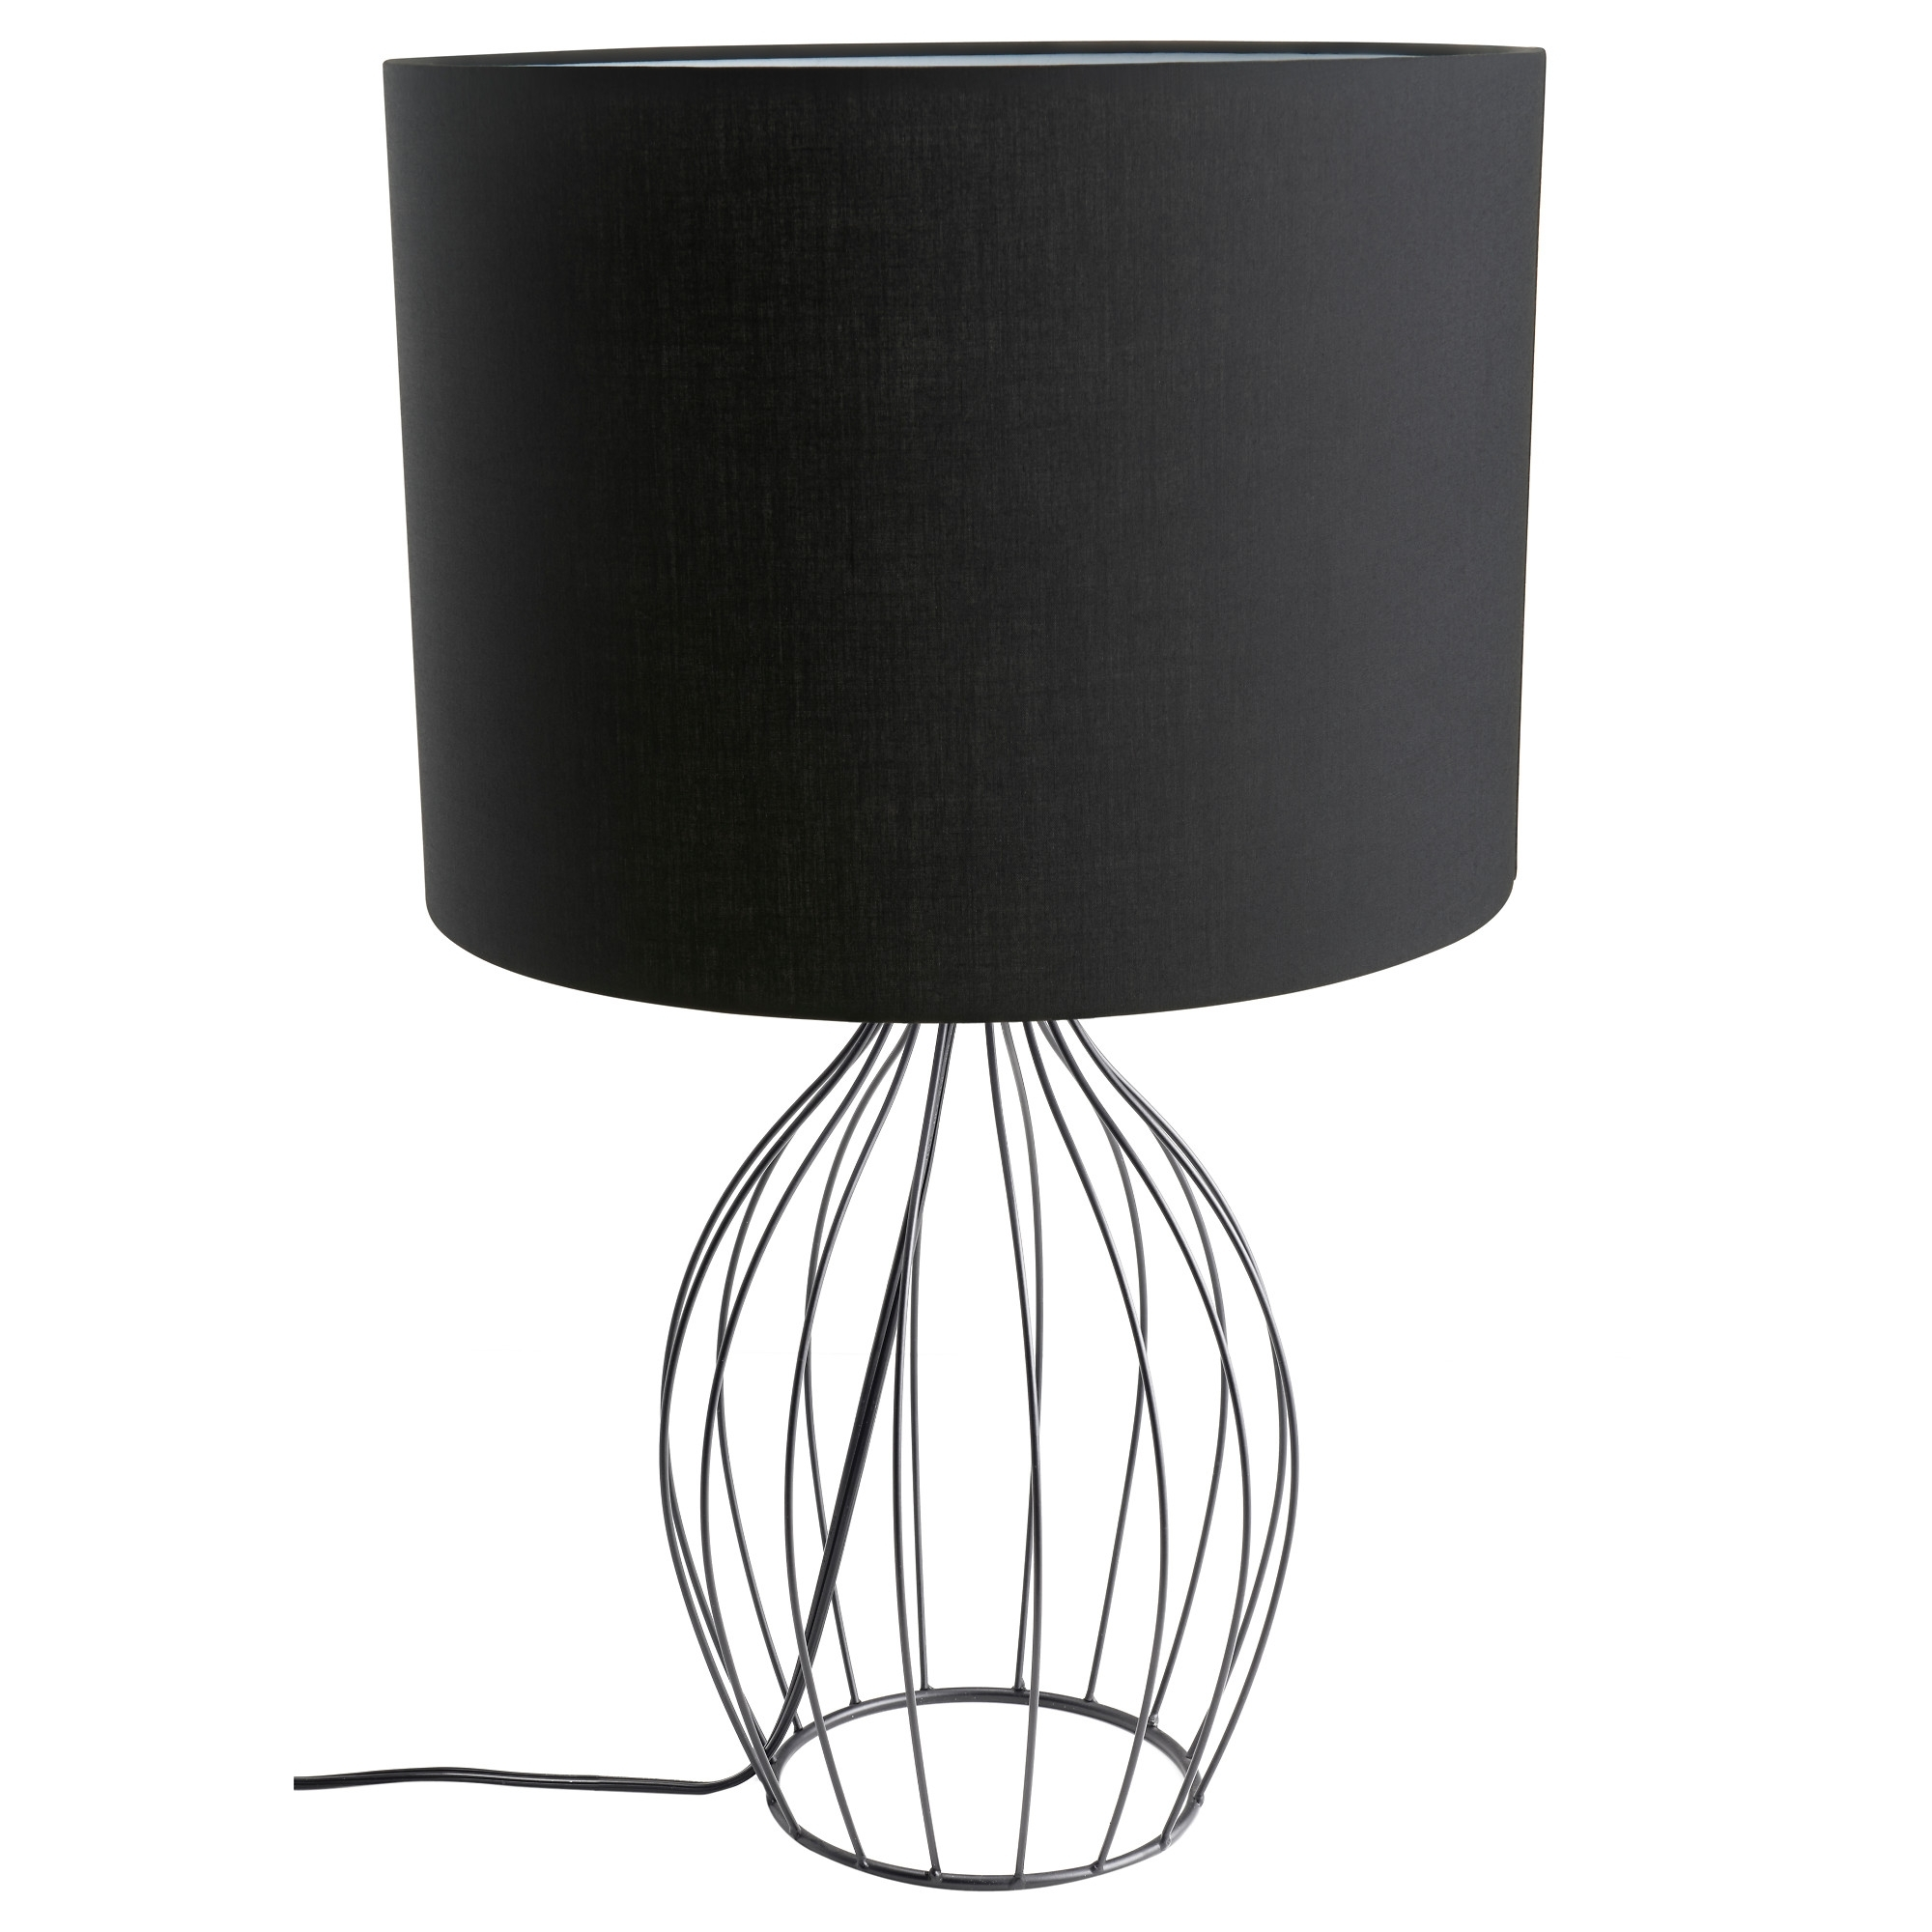 Featured Photo Of Living Room Table Lamps At Ikea